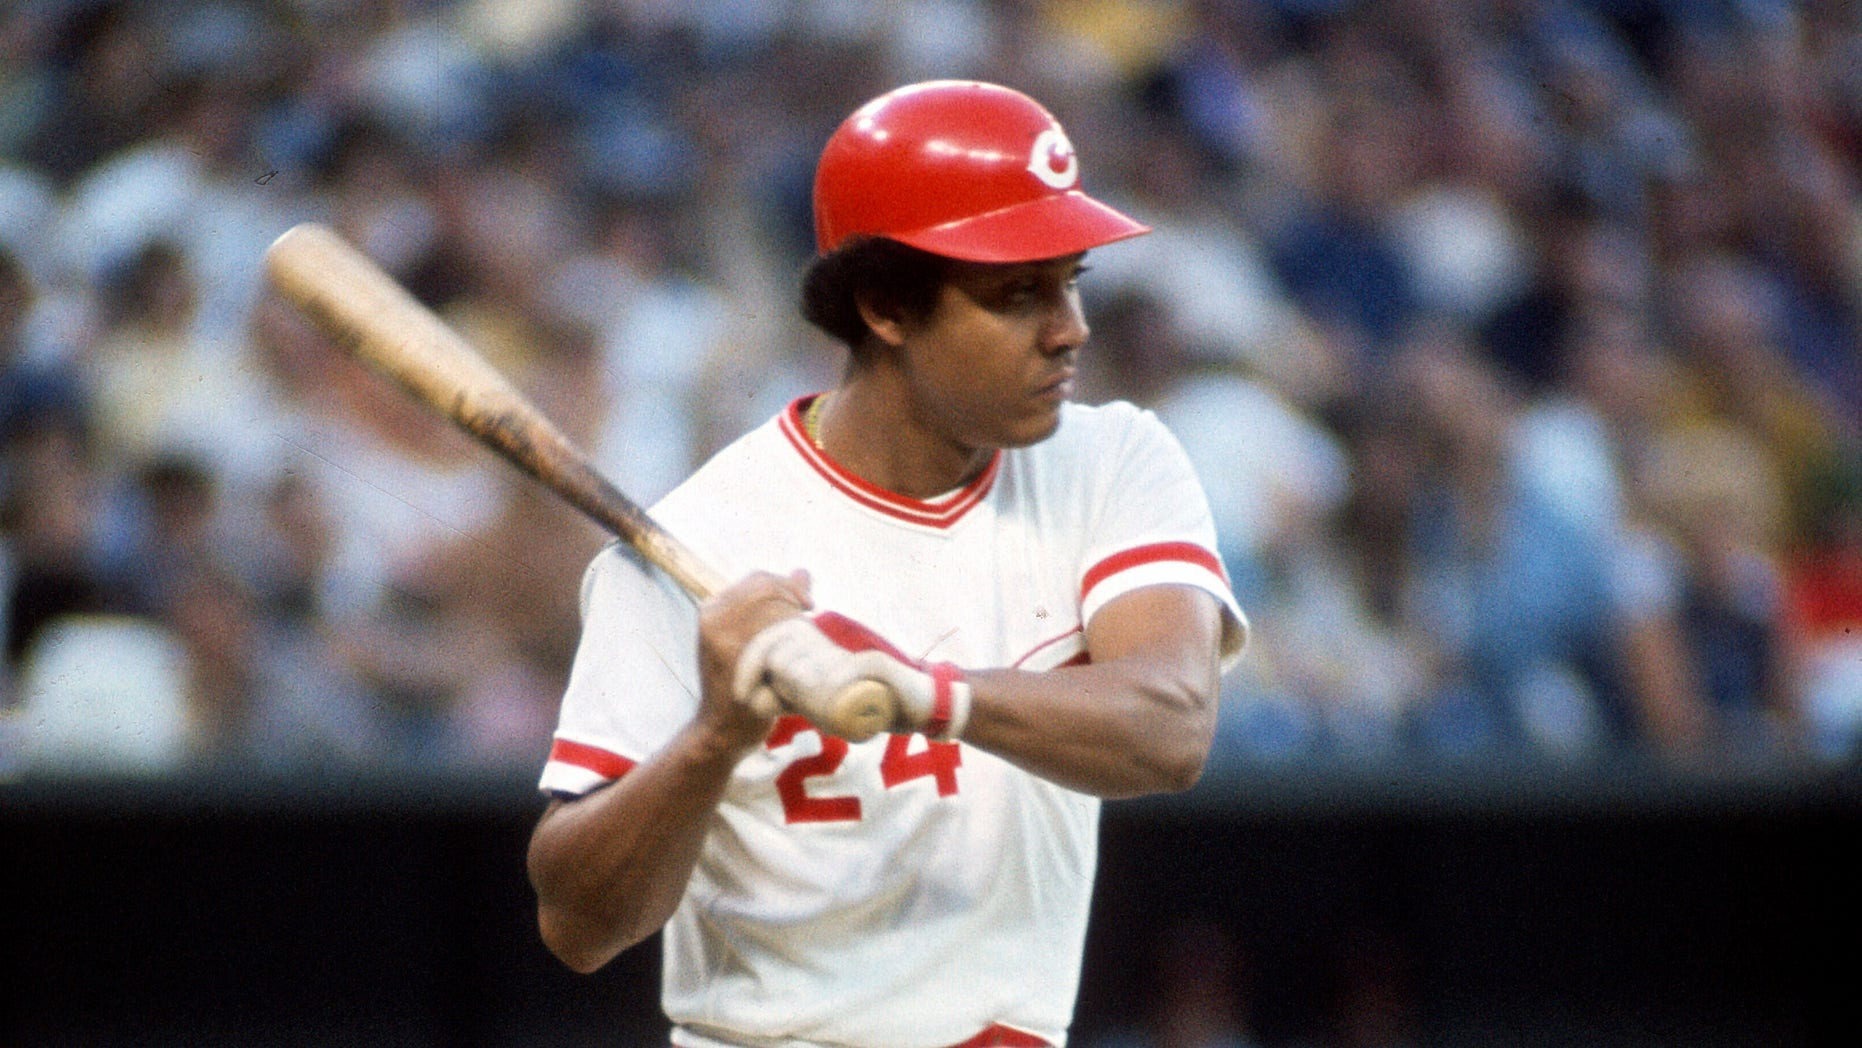 CINCINNATI, OH - CIRCA 1972: First Baseman Tony Perez #24 of the Cincinnati Reds bats during an Major League Baseball game circa 1972 at Riverfront Stadium in Cincinnati, Ohio. Perez played for the Reds from 1964-76 and 1984-86. (Photo by Focus on Sport/Getty Images)